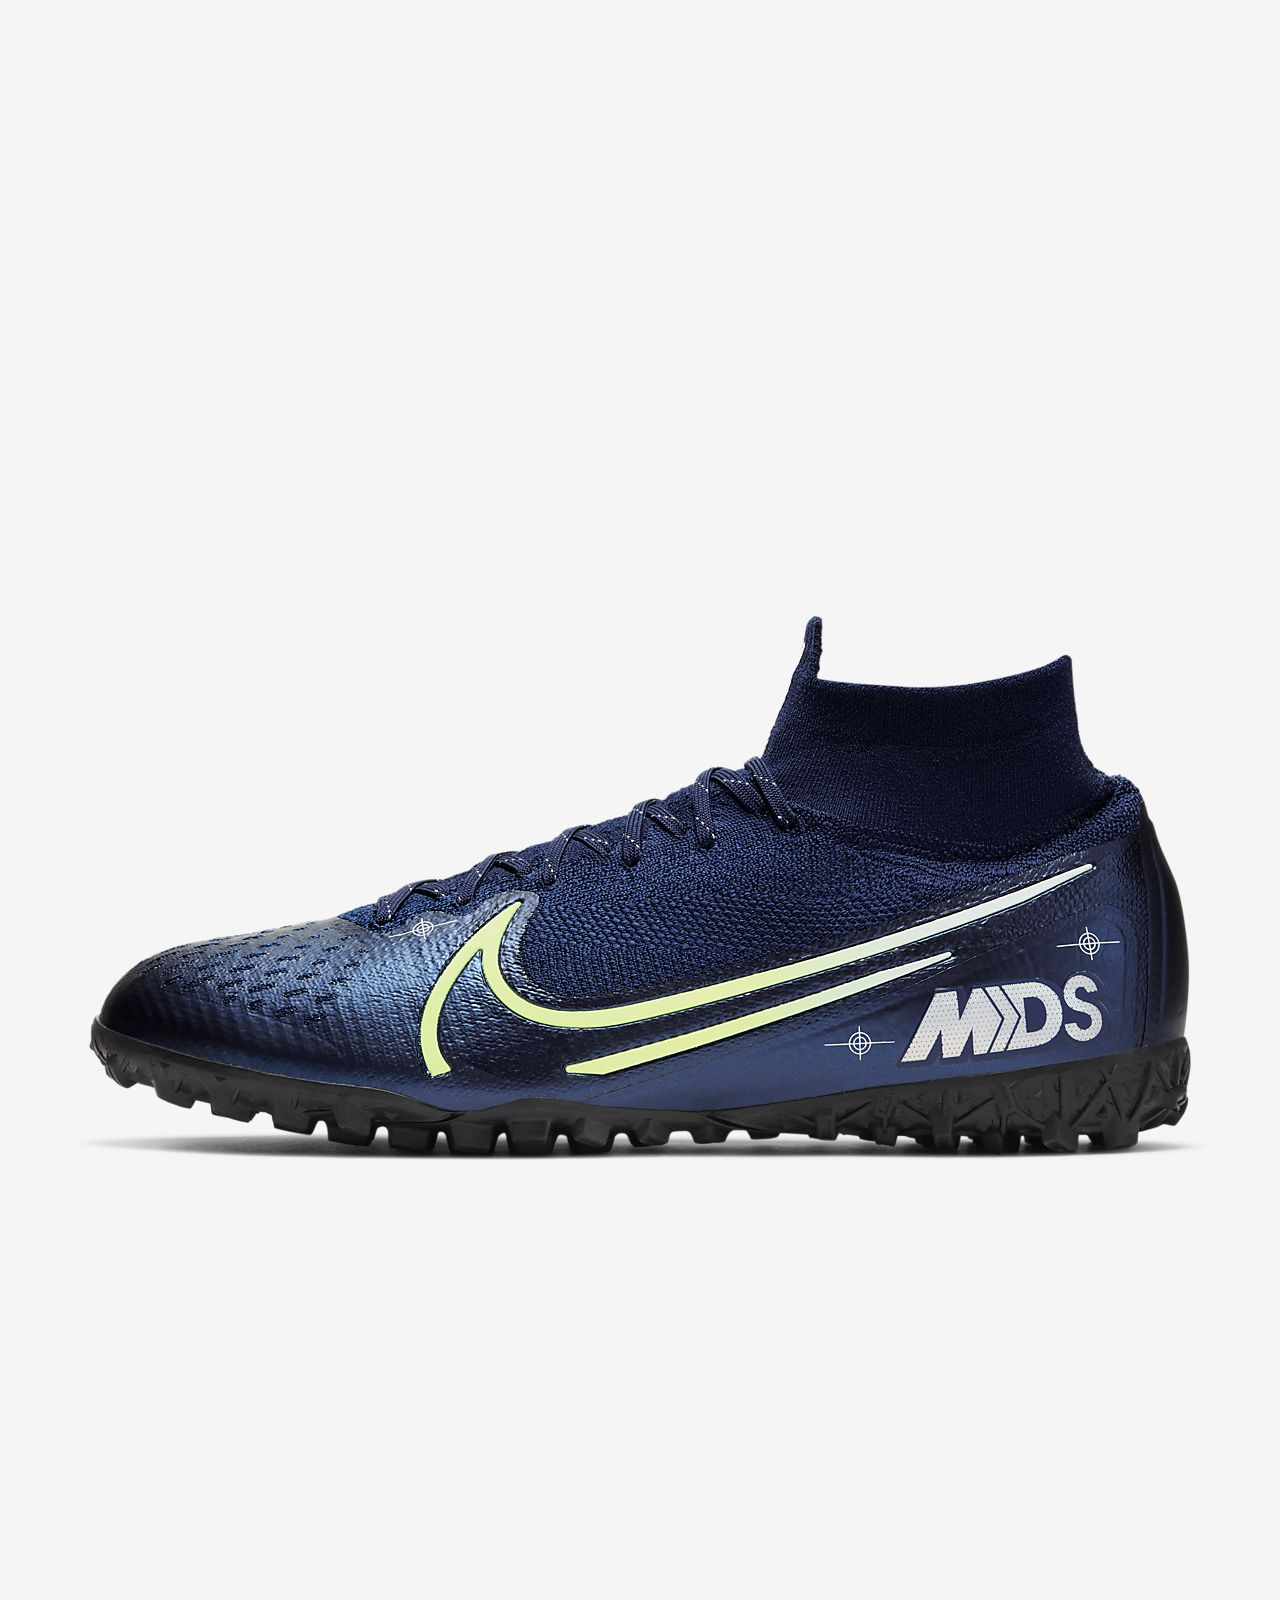 Nike Mercurial Superfly 7 Elite MDS TF Voetbalschoen (turf)